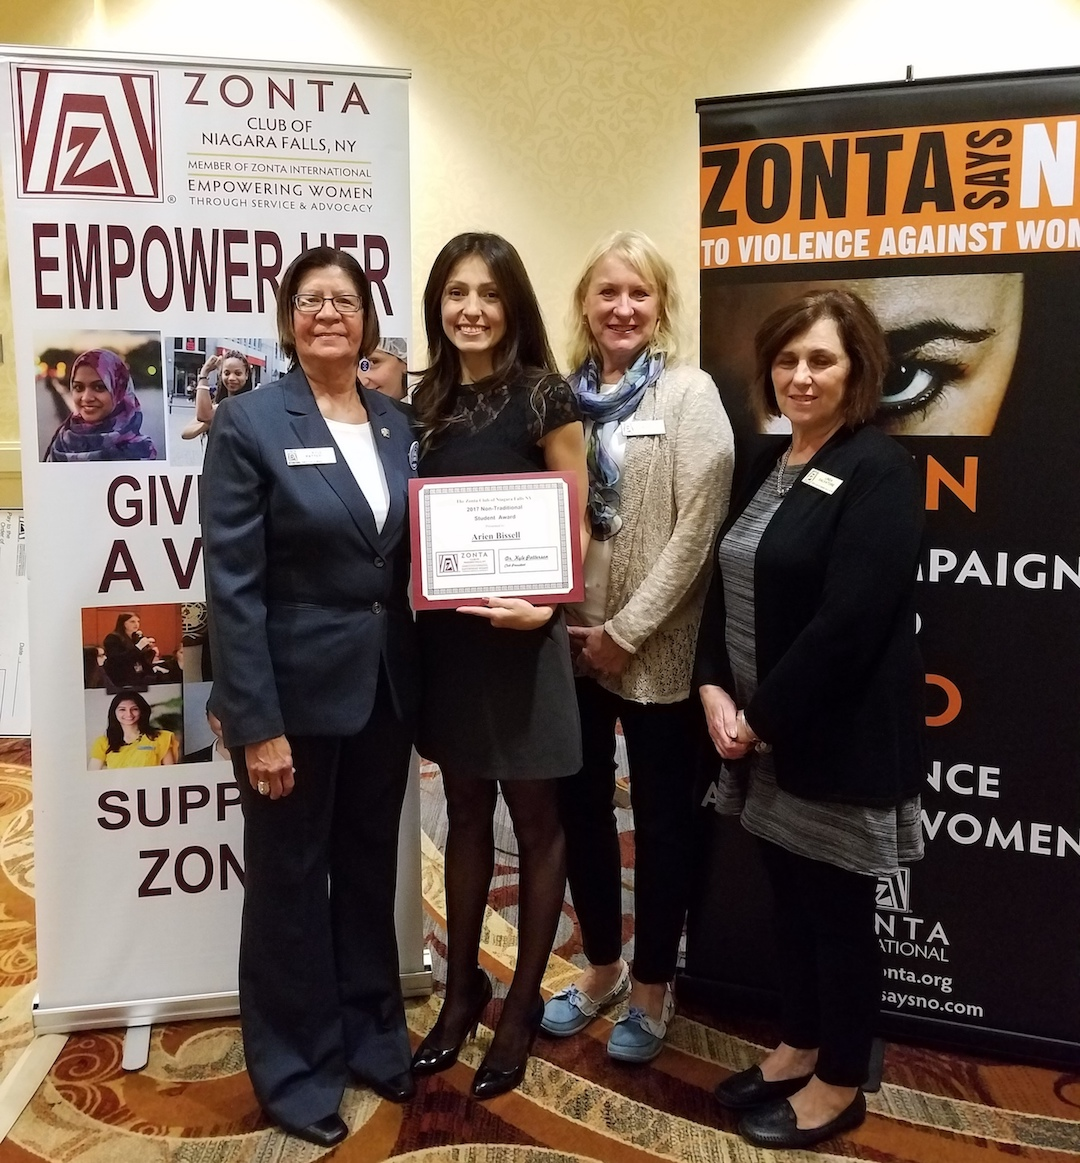 From left: Zonta President Dr. Kyle Patterson, Arien Bissell holding the award certificate, Bonnie Weidert and Linda Salvatore from the educational awards committee.